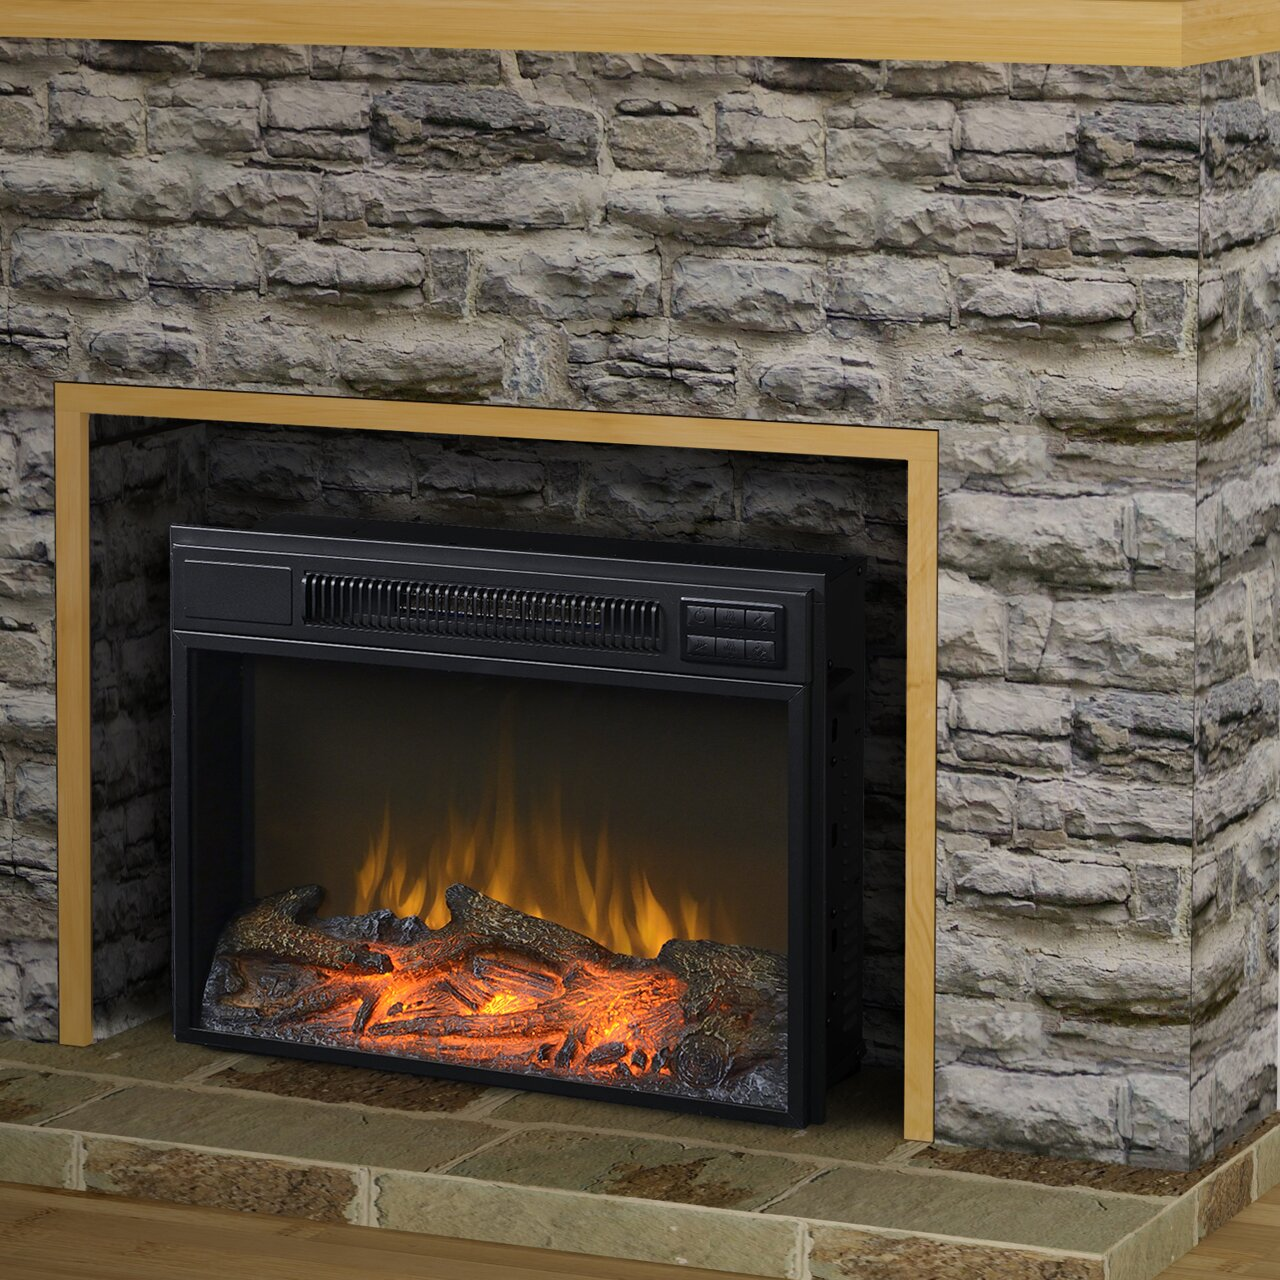 Country flame wood stove insert - Homestar Flamelux Wide Electric Fireplace Reviews Wayfair Country Flame